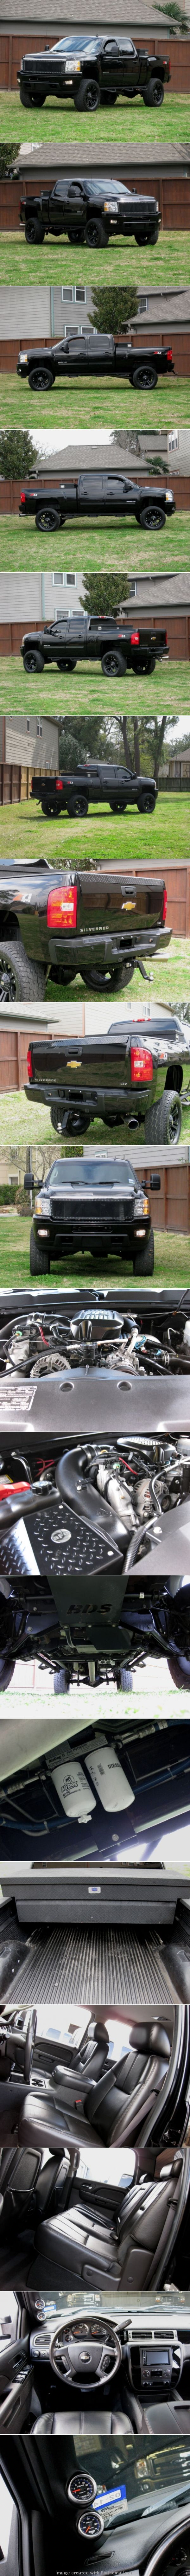 2010 Chevrolet Silverado 2500HD - Duramax diesel + Allison transmission. Crew cab w/ short bed. It comes with LTZ package (Navigation, leather + heated seats, dual power seats, dual climate control, parking sensors, XM, OnStar, and more). 8in BDS suspension lift, custom grill, 22in XD Monster rims, 37in brand new tires and much more! The exterior of this truck is in excellent shape just like a new one. The interior is also in excellent shape.